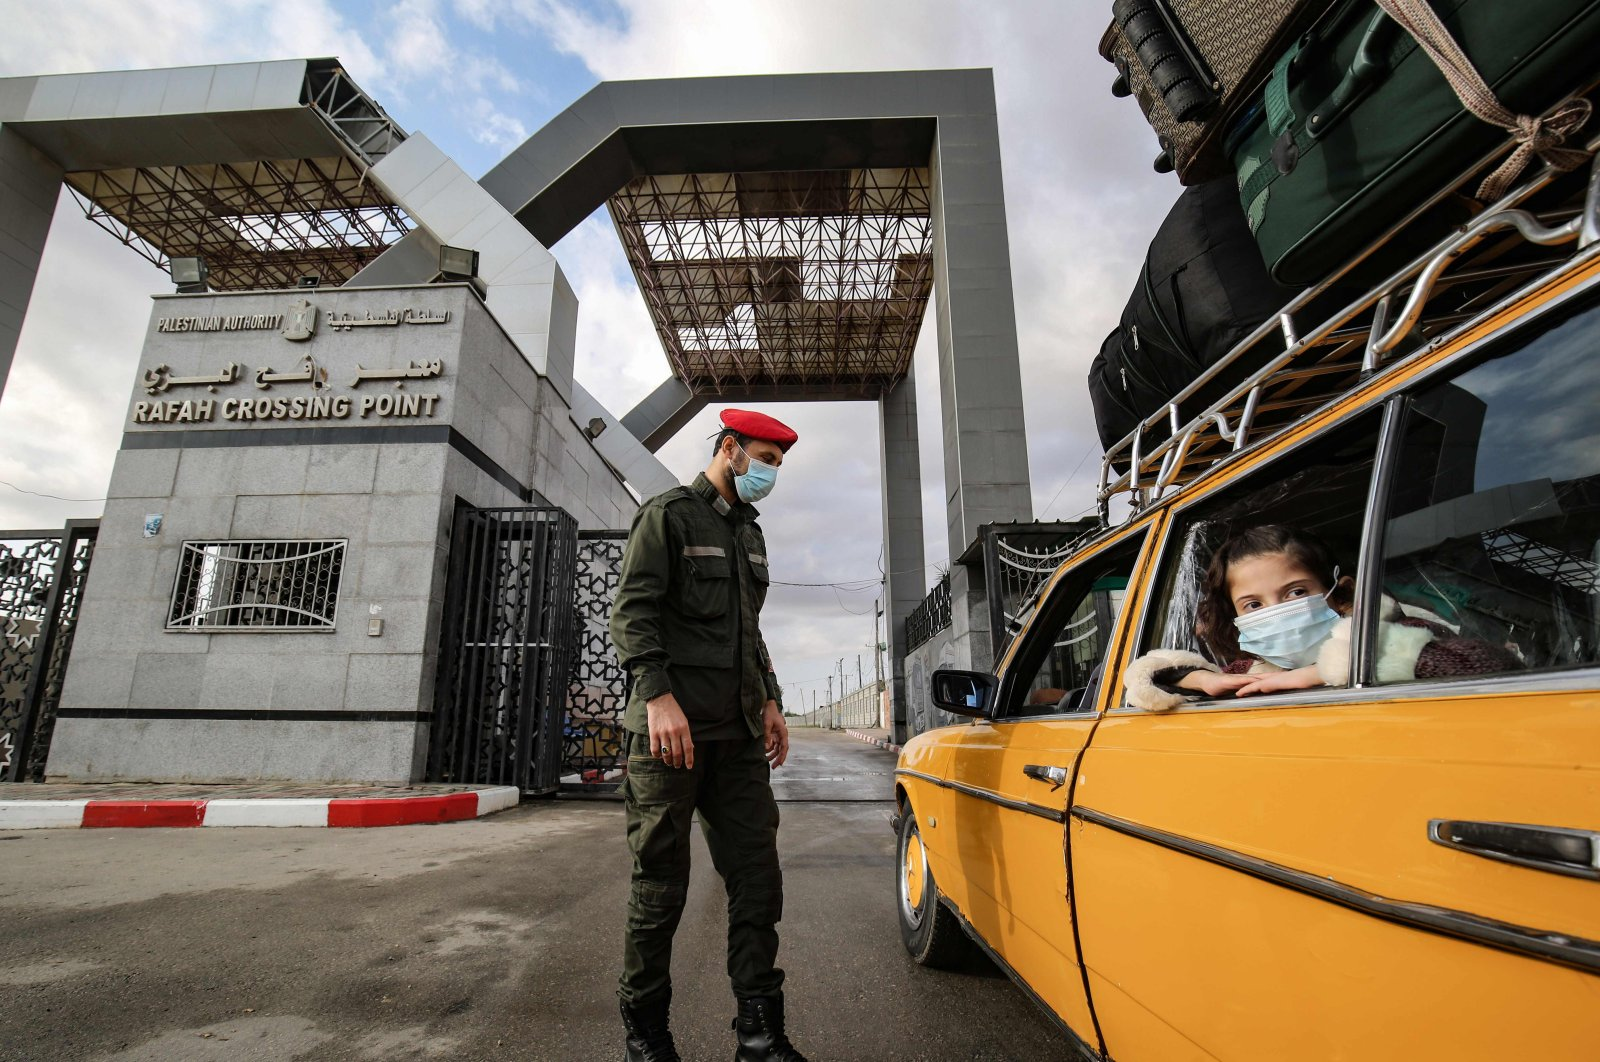 A Palestinian border guard, wearing protective face masks due to the COVID-19 pandemic, checks the ID of travelers as they wait their turn to cross into Egypt through the Rafah border crossing from the Gaza Strip, Nov. 2, 2020. (AFP Photo)